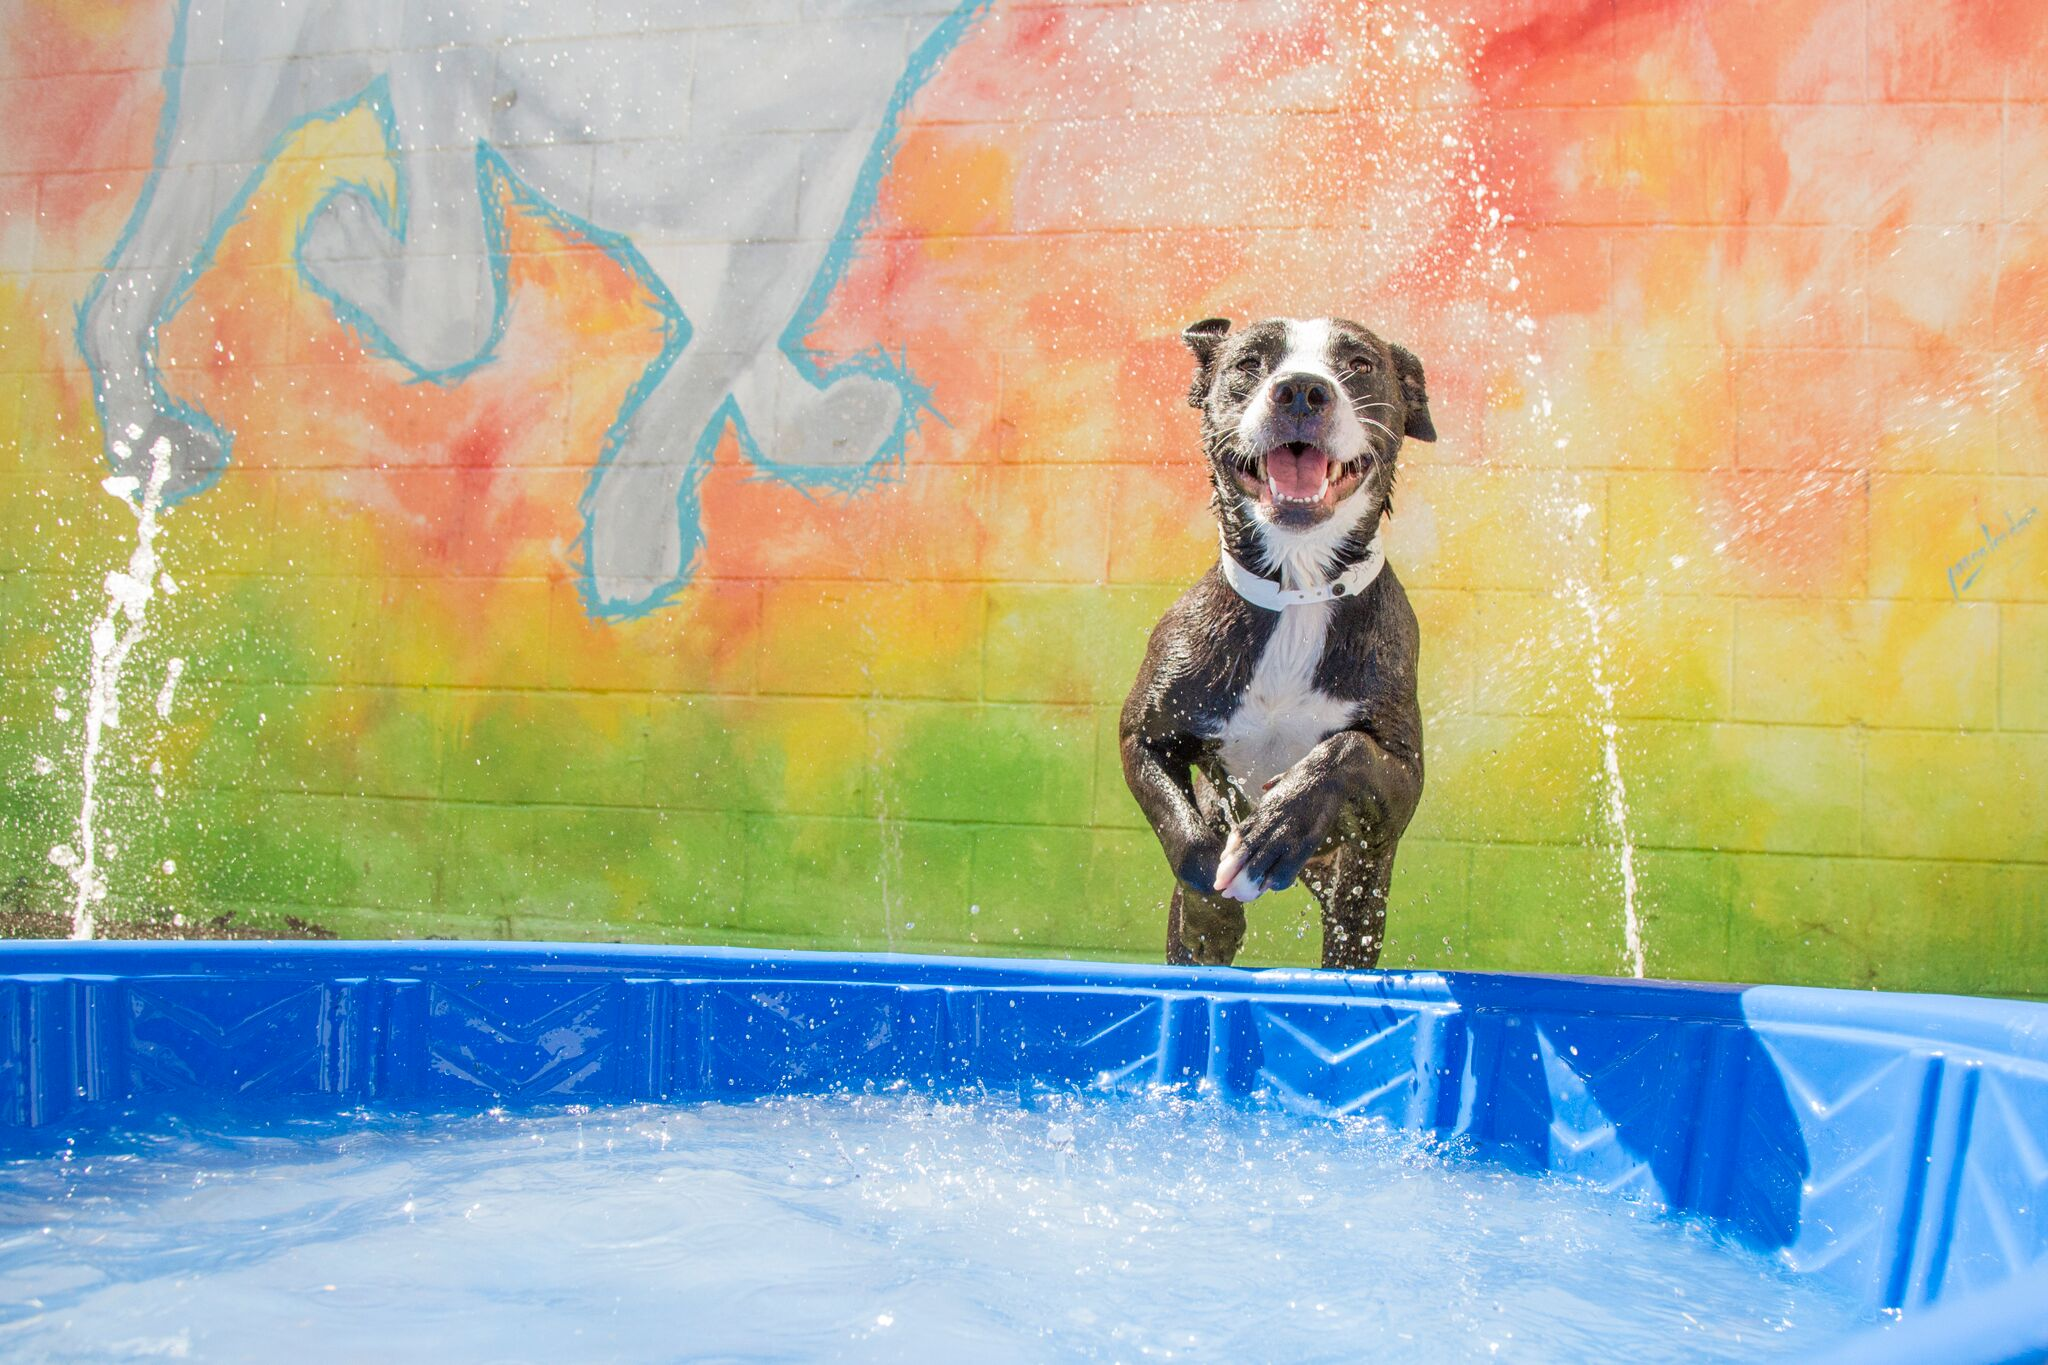 Molly enrichment water pool play (8)_preview.jpeg